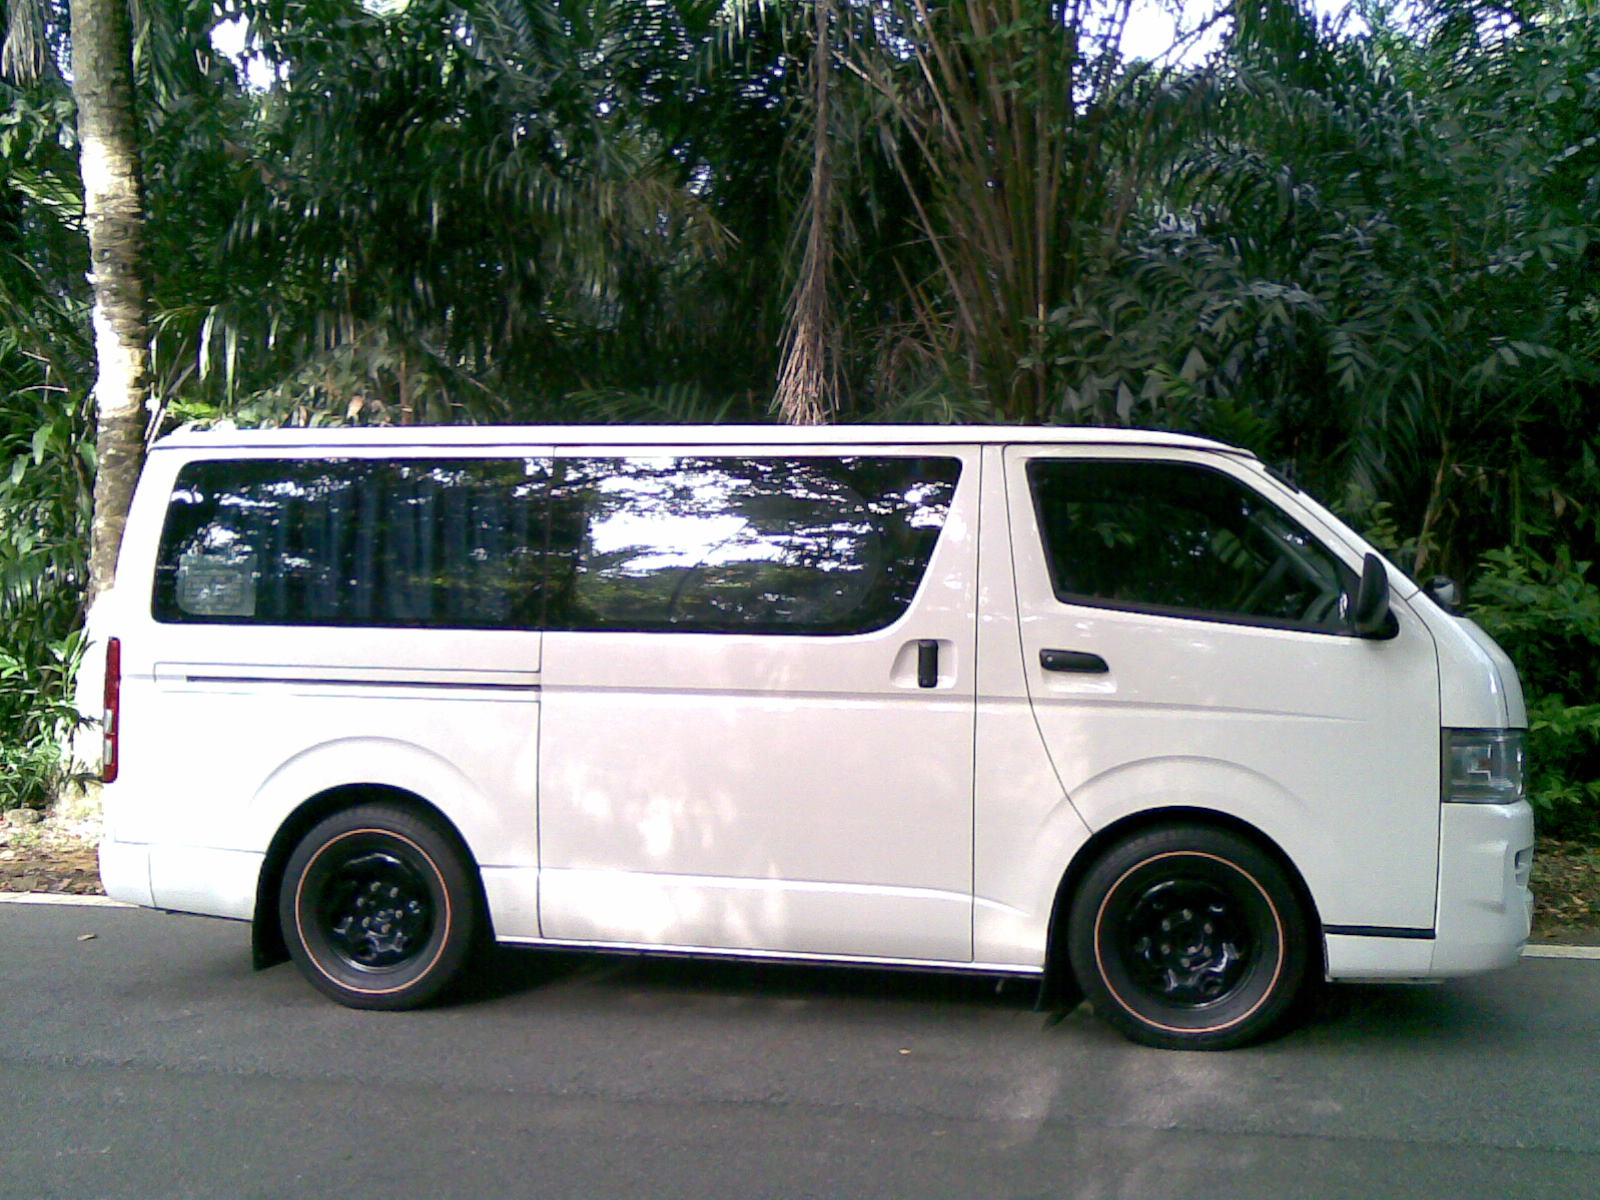 Toyota Hiace 2001 photo - 5